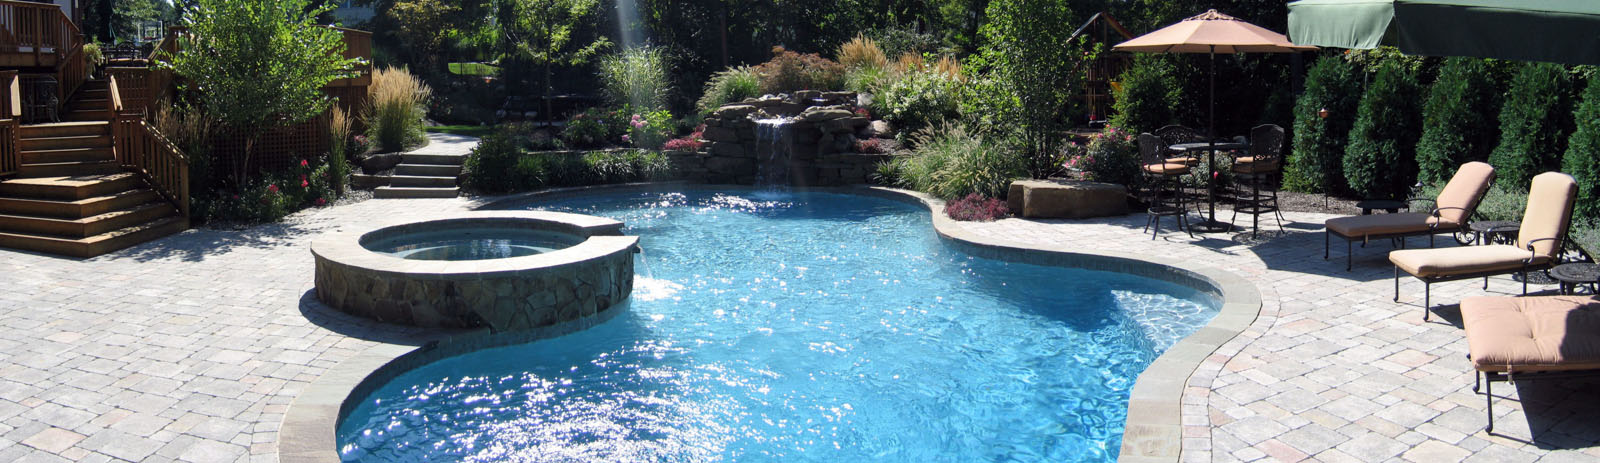 Deck, Pool, Spa, Waterfall, Landscaping - North Jersey